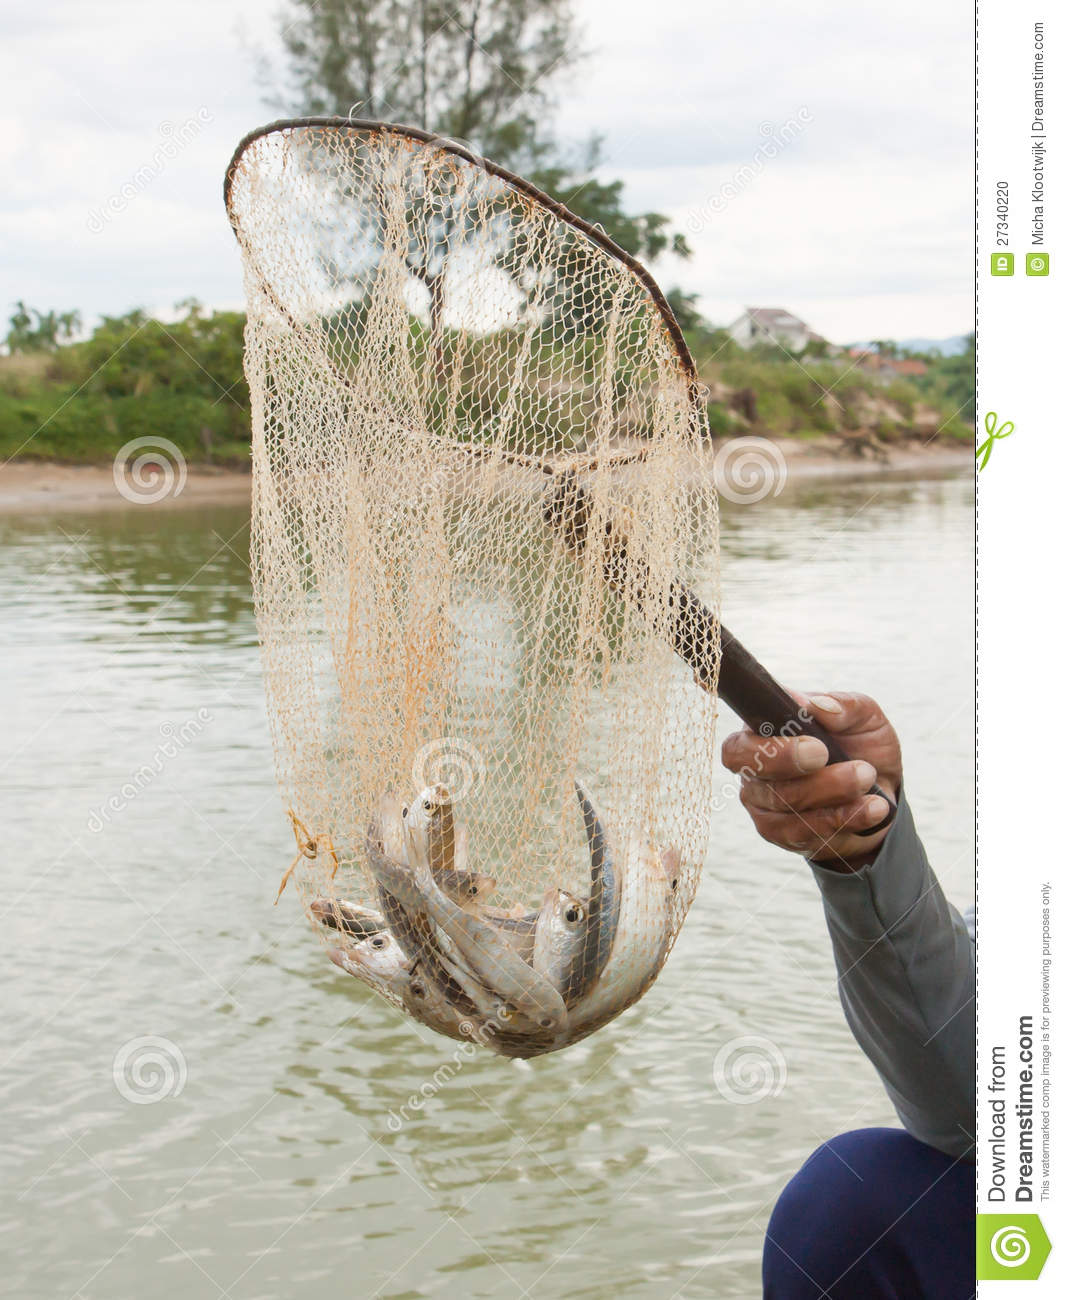 Fisherman hold a net with several small fish in it stock for Small fish net